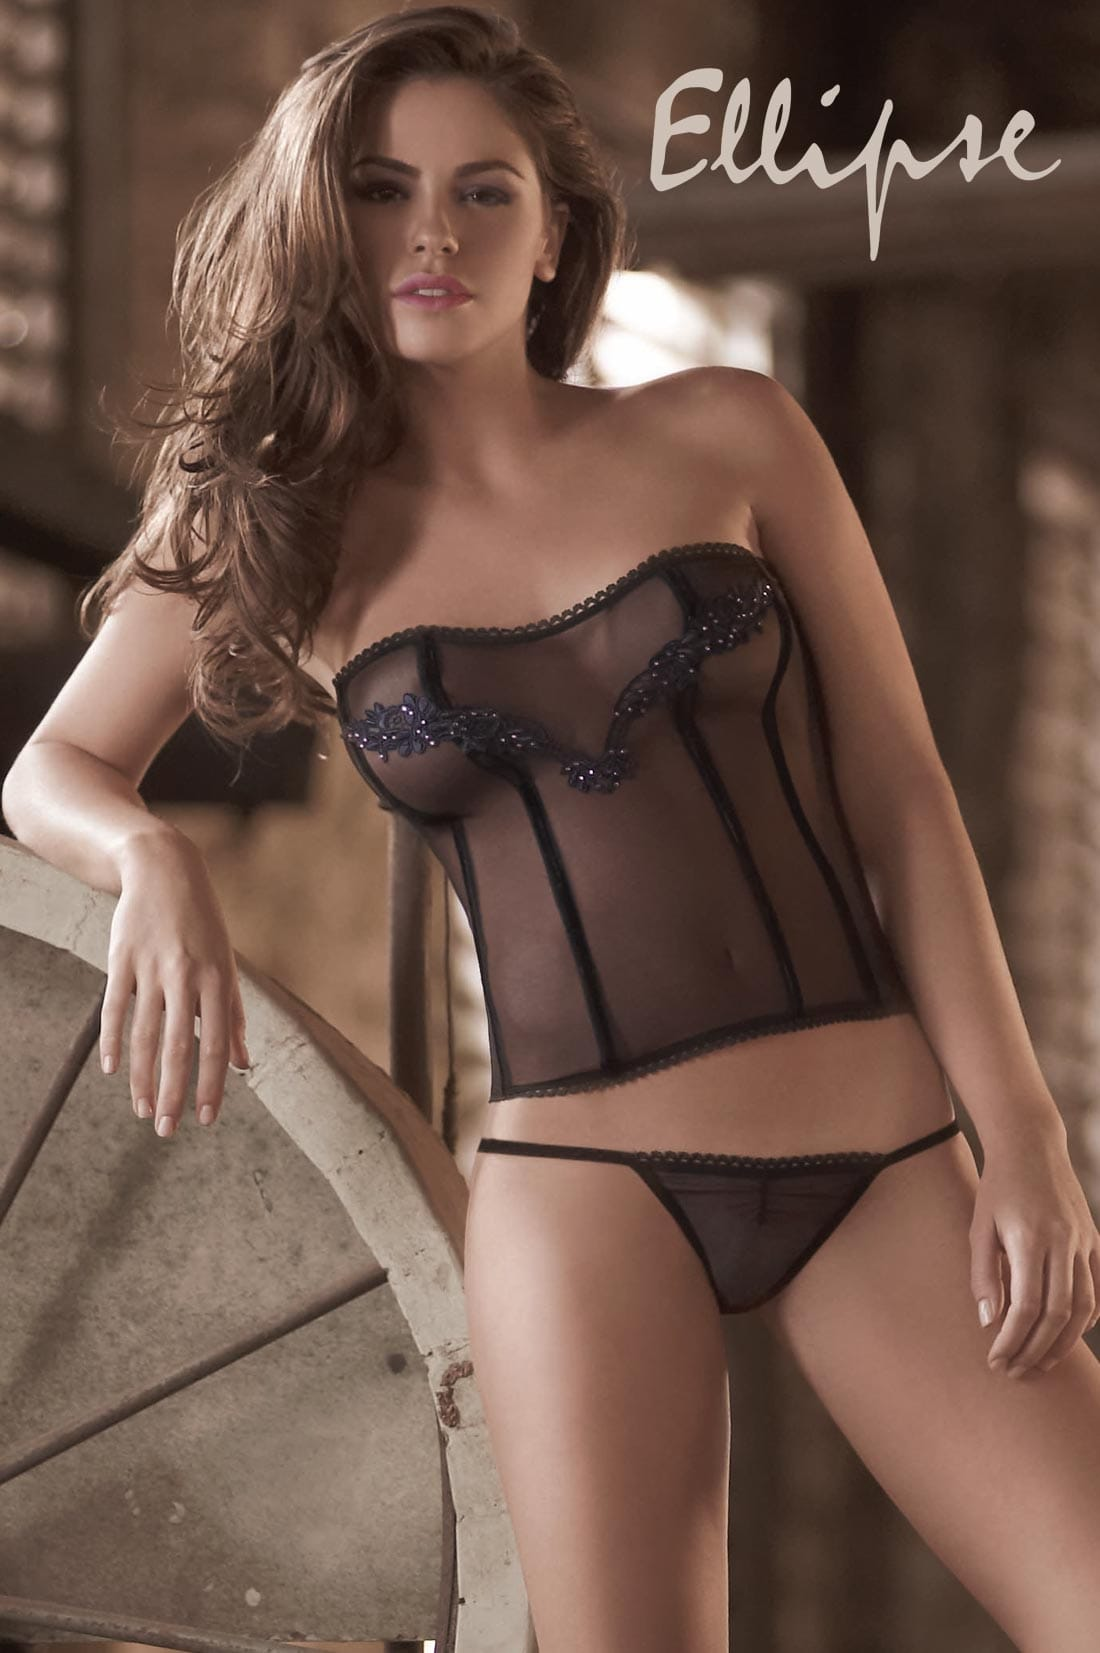 cool body in sexy lingerie